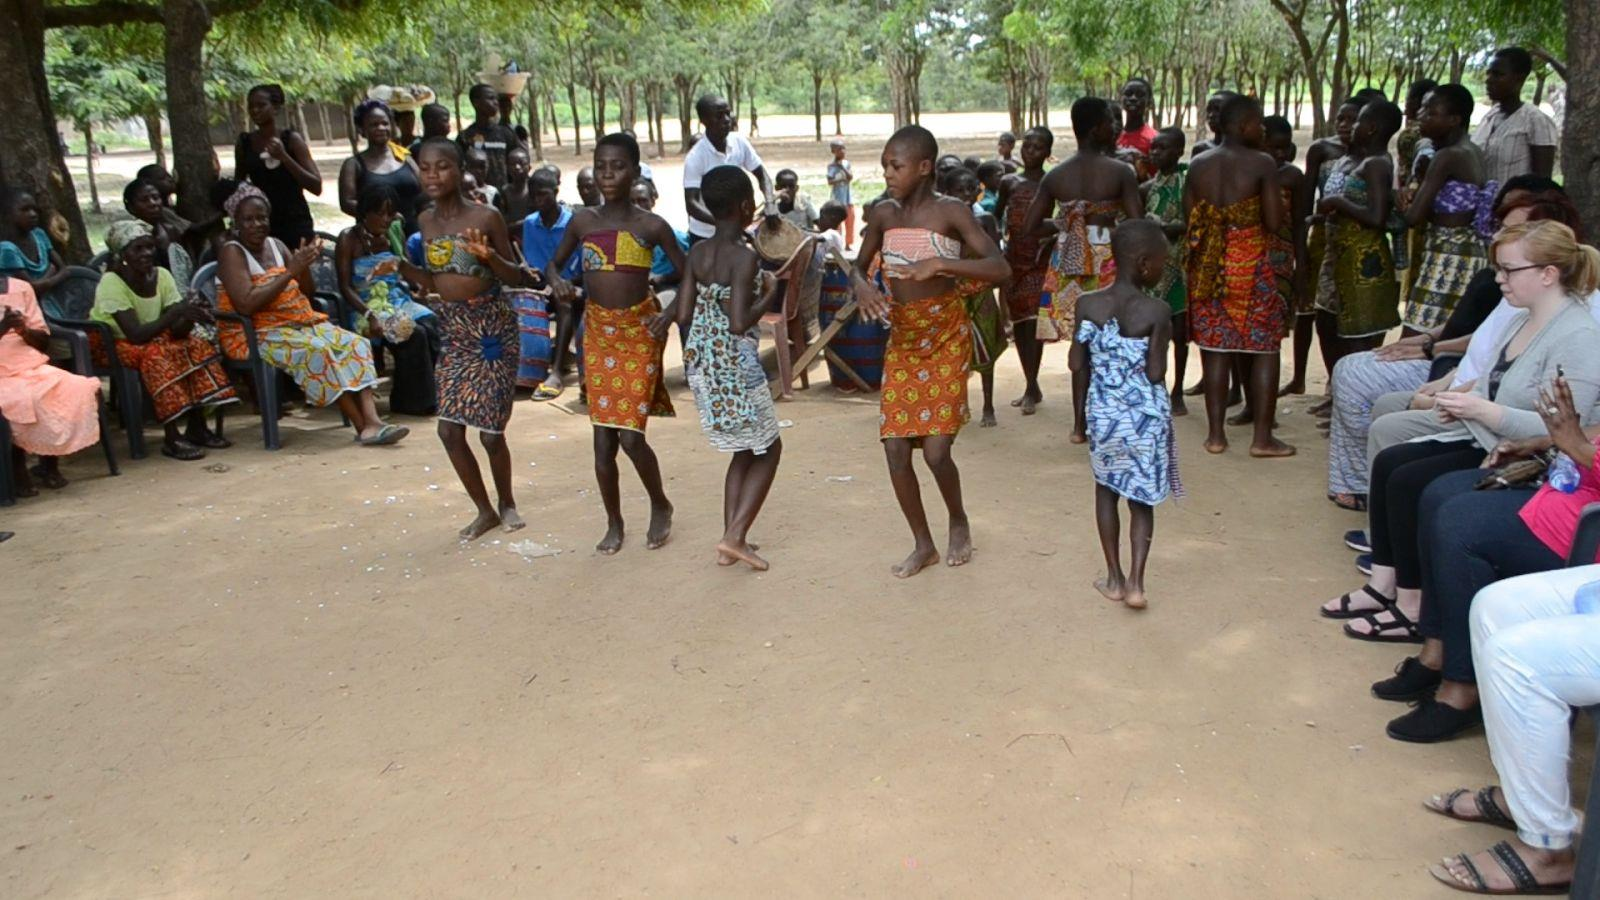 The youth performing  Agbadza  , the most popular traditional dance of the Ewe people.